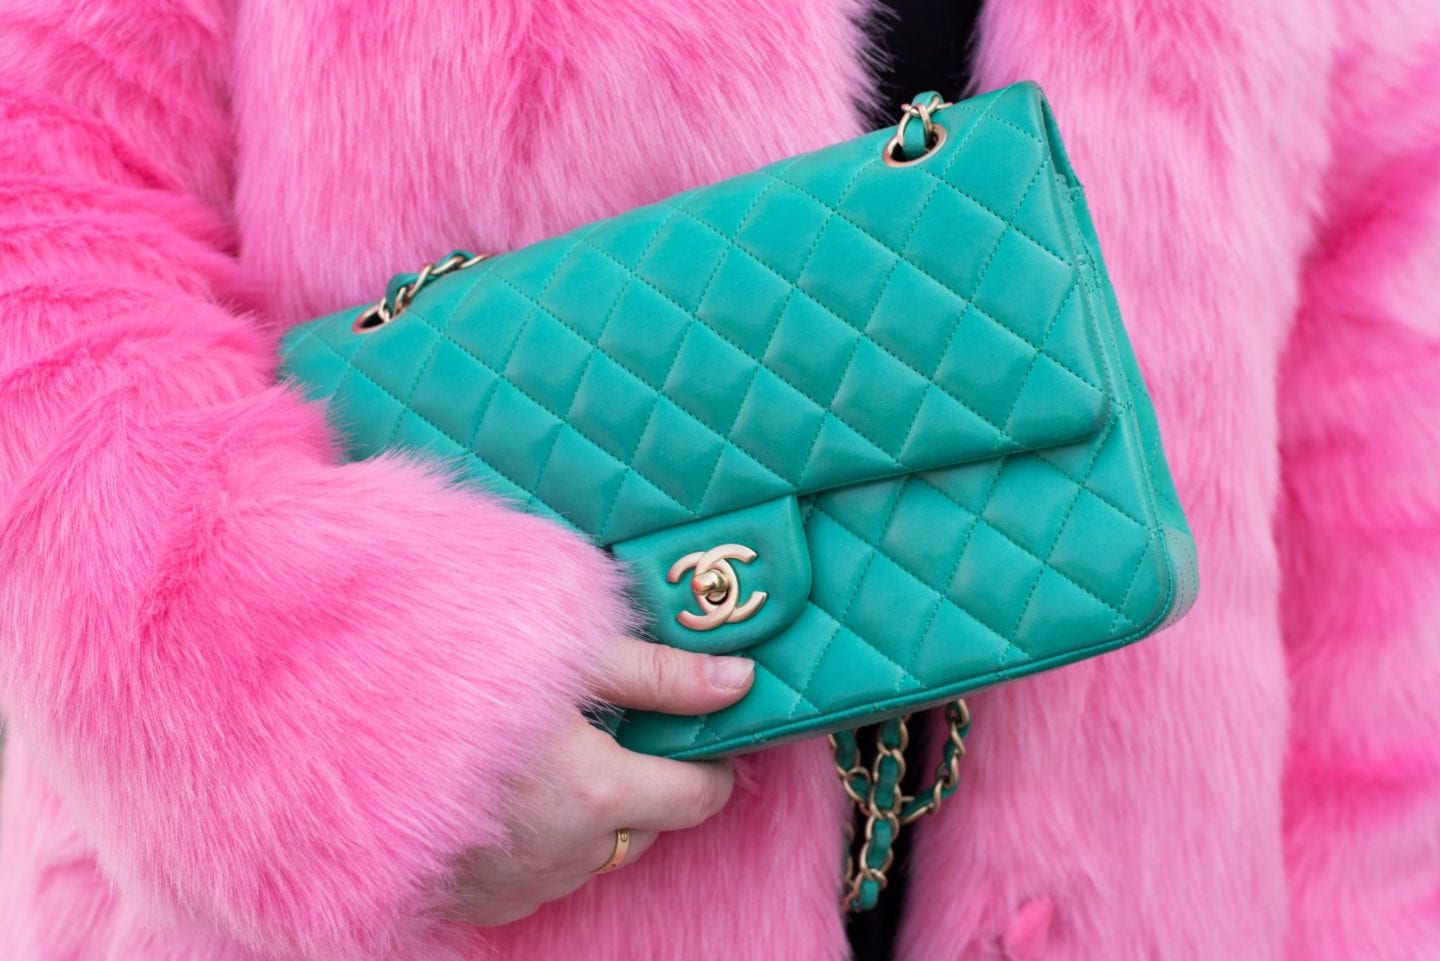 Beware Of Colour Transfer chanel handbag wear and tear green bag